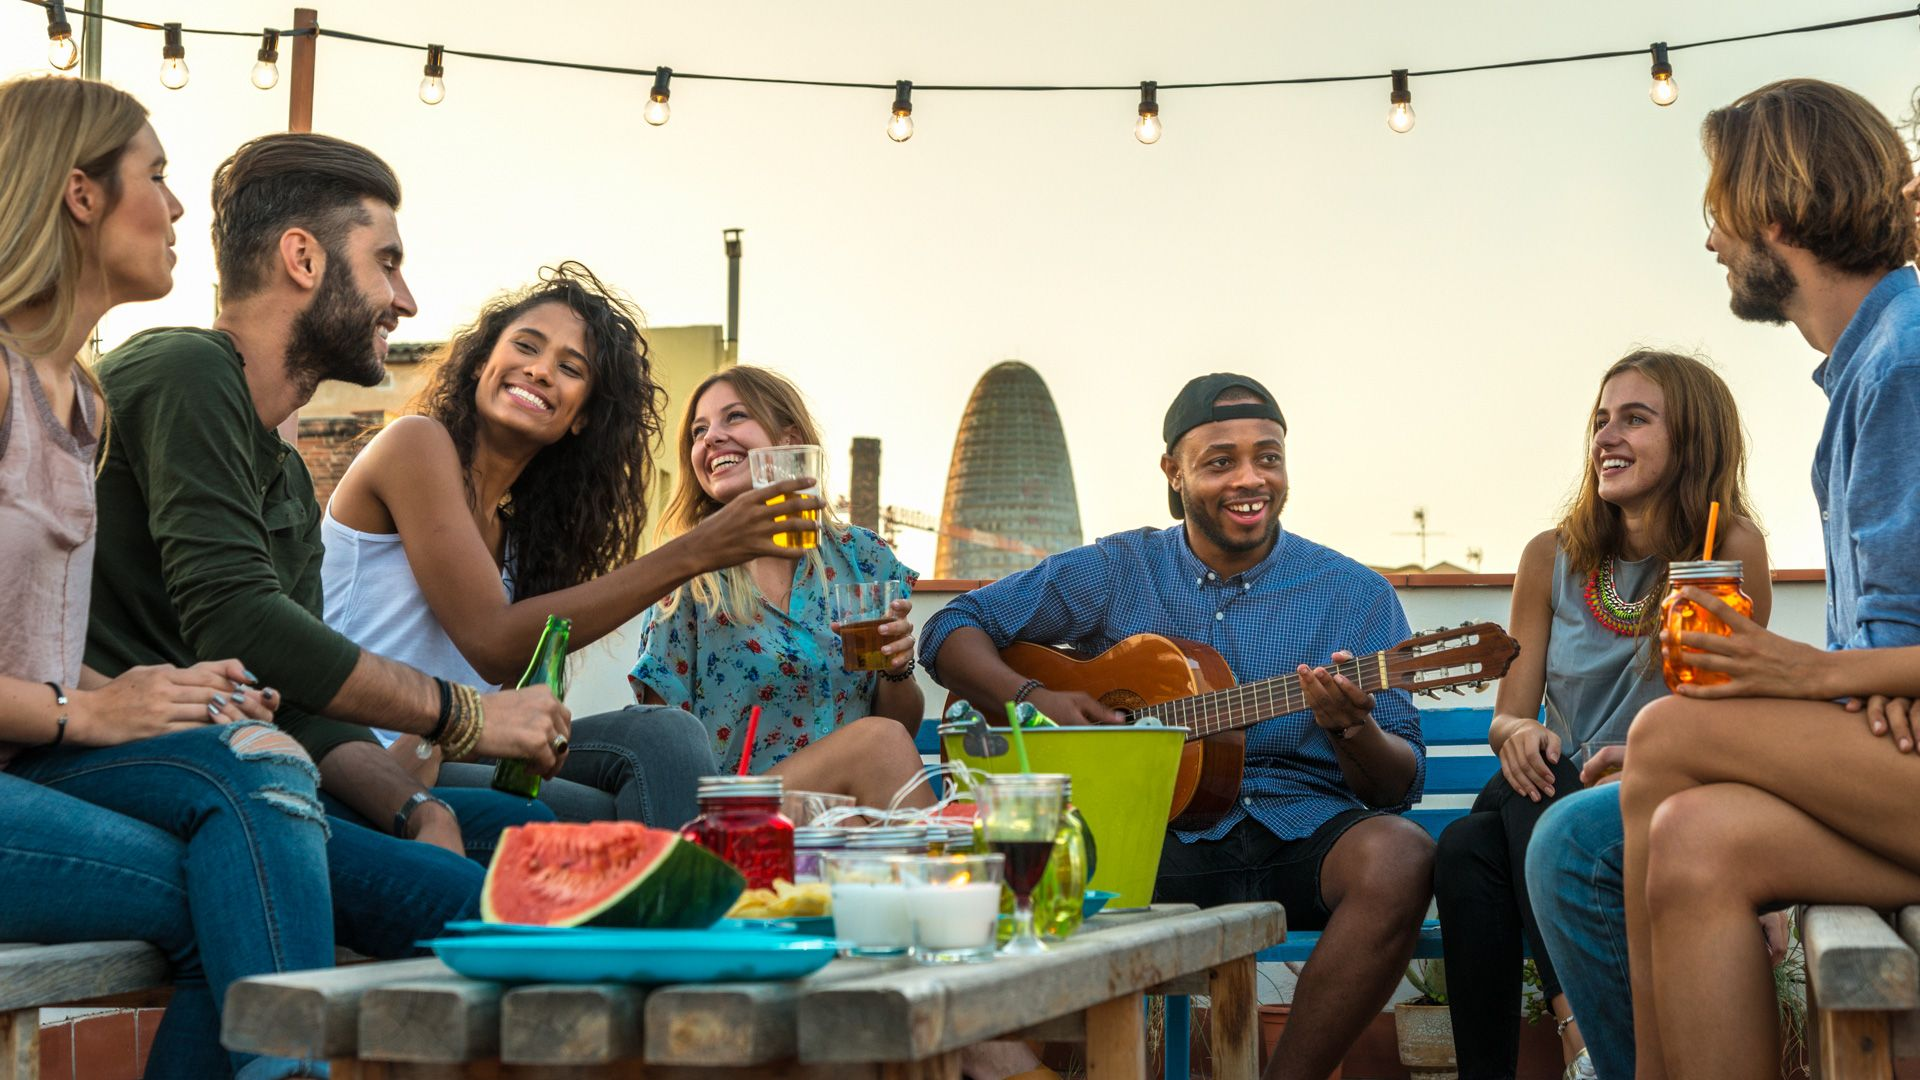 Young adults celebrating life and friendship on a rooftop in Barcelona, Spain.